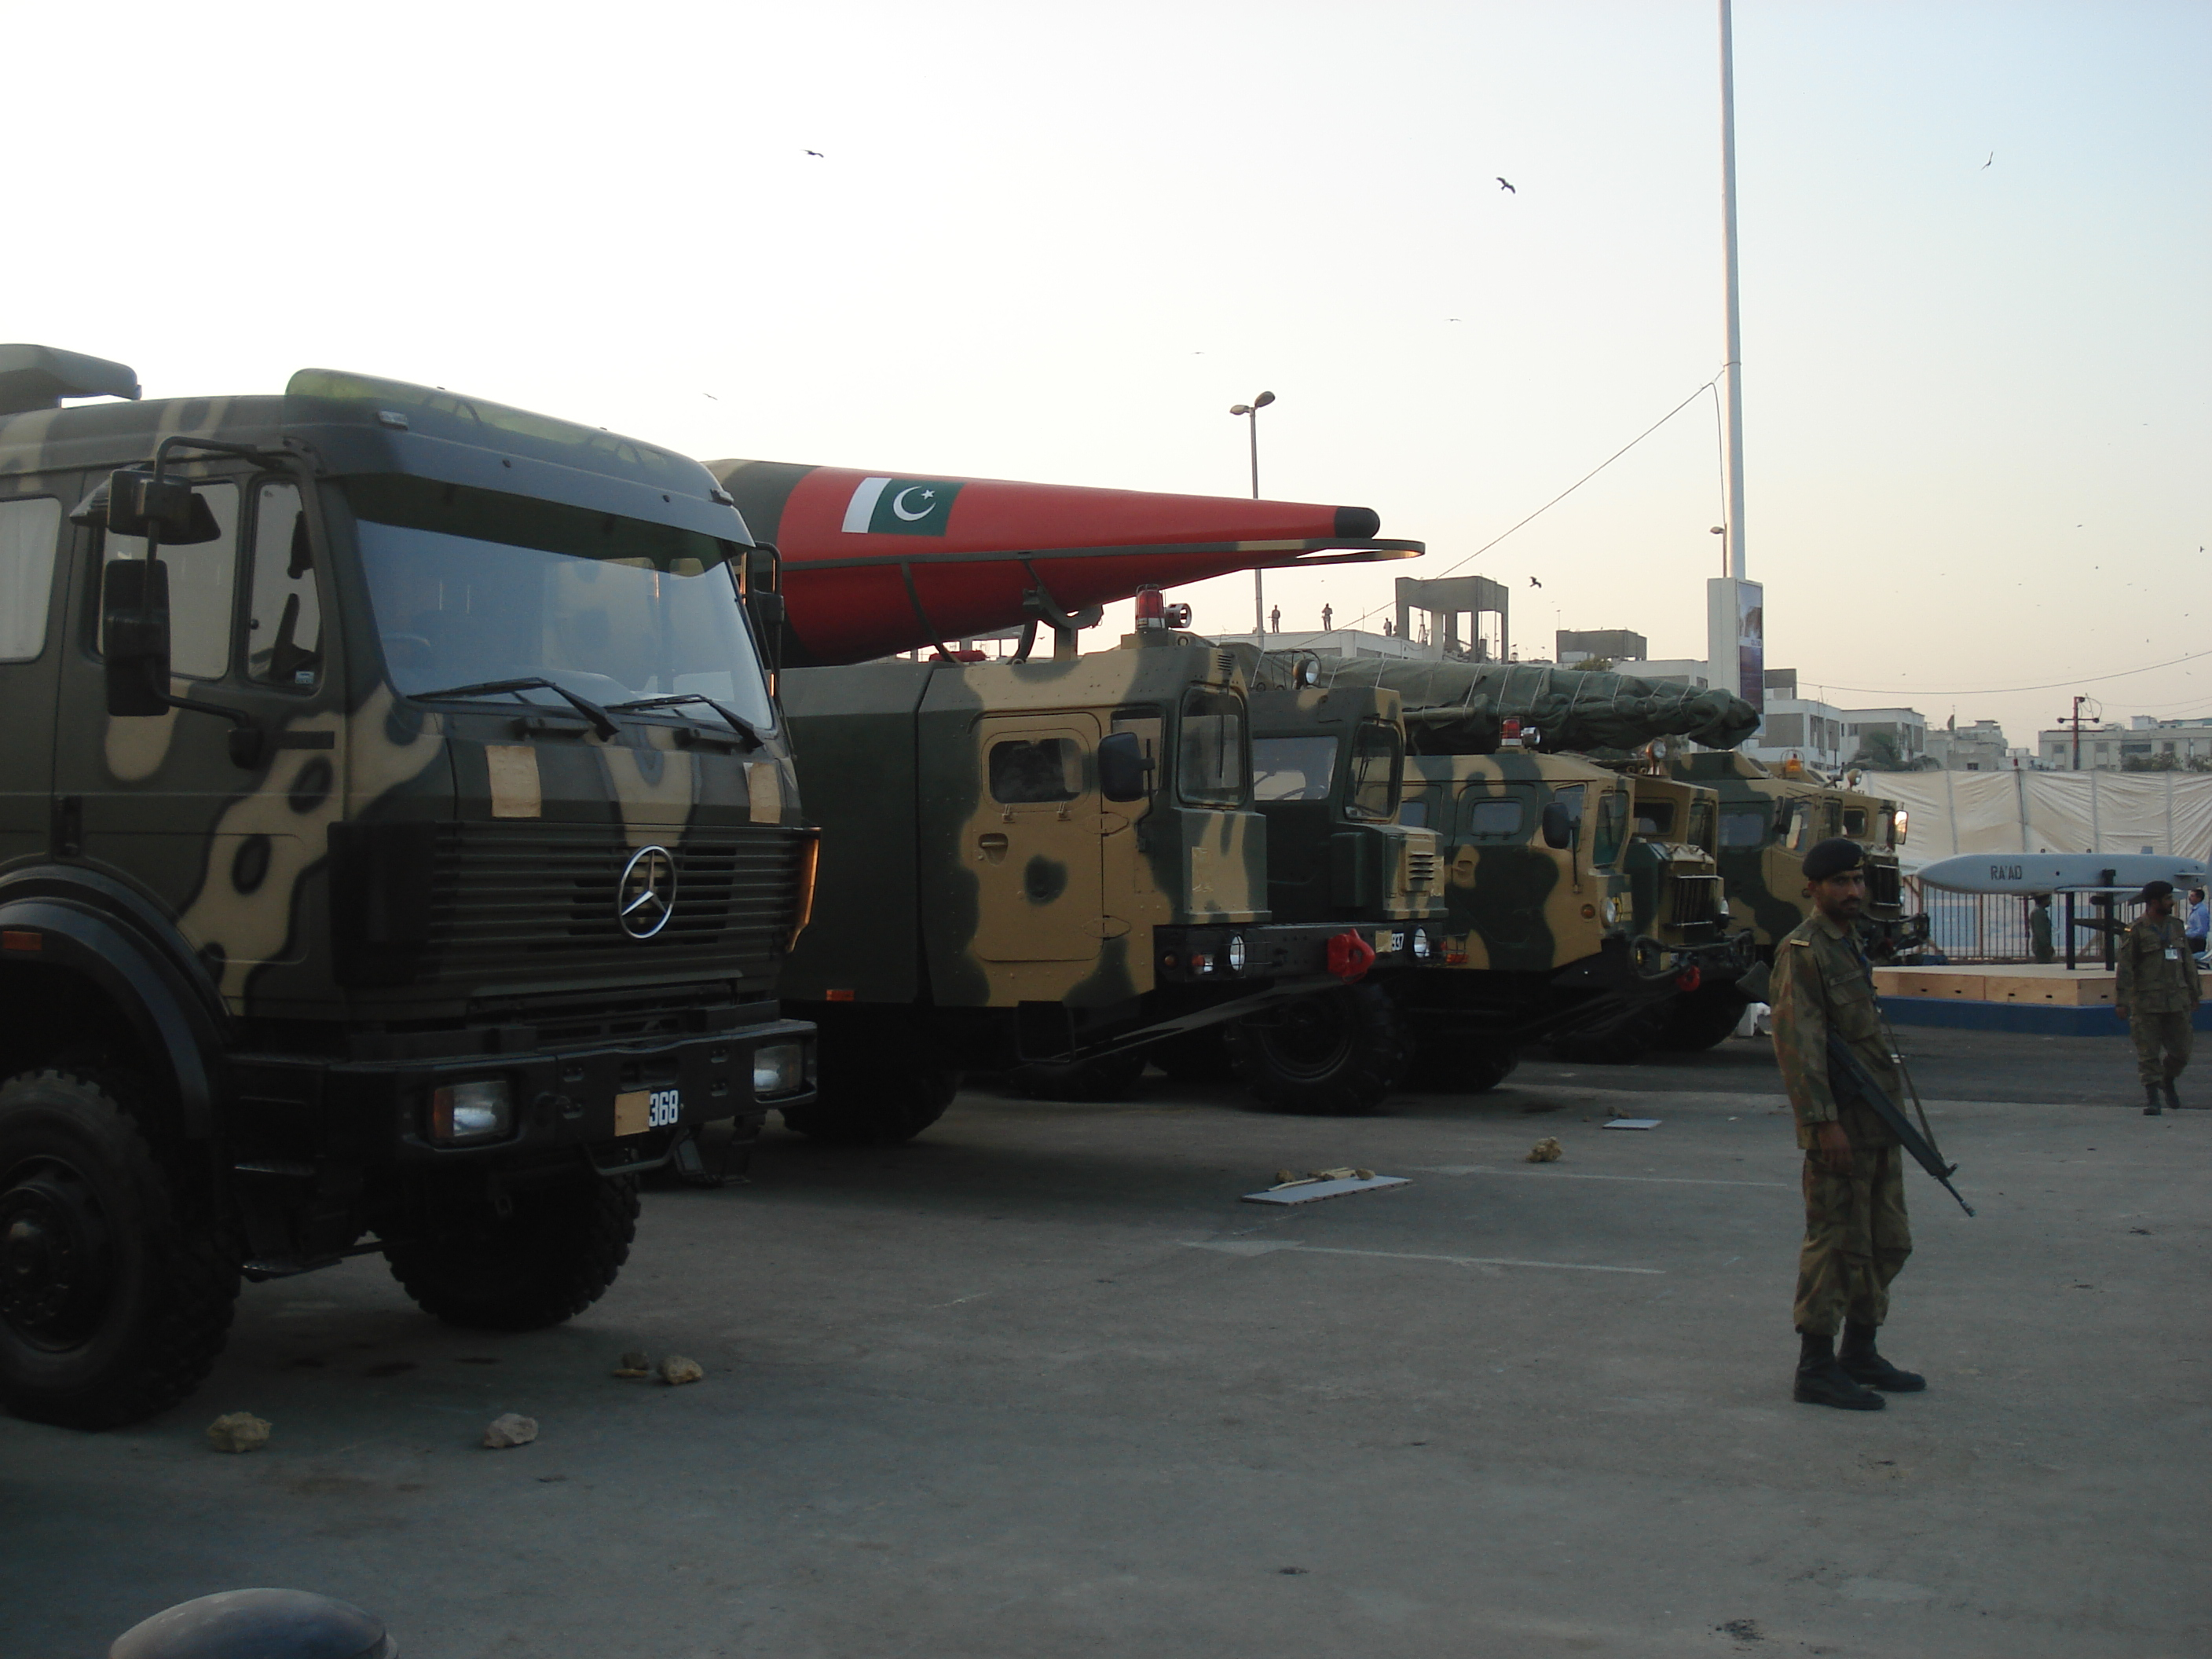 What would the domestic (American) effects be off a nuclear war between India and Pakistan?